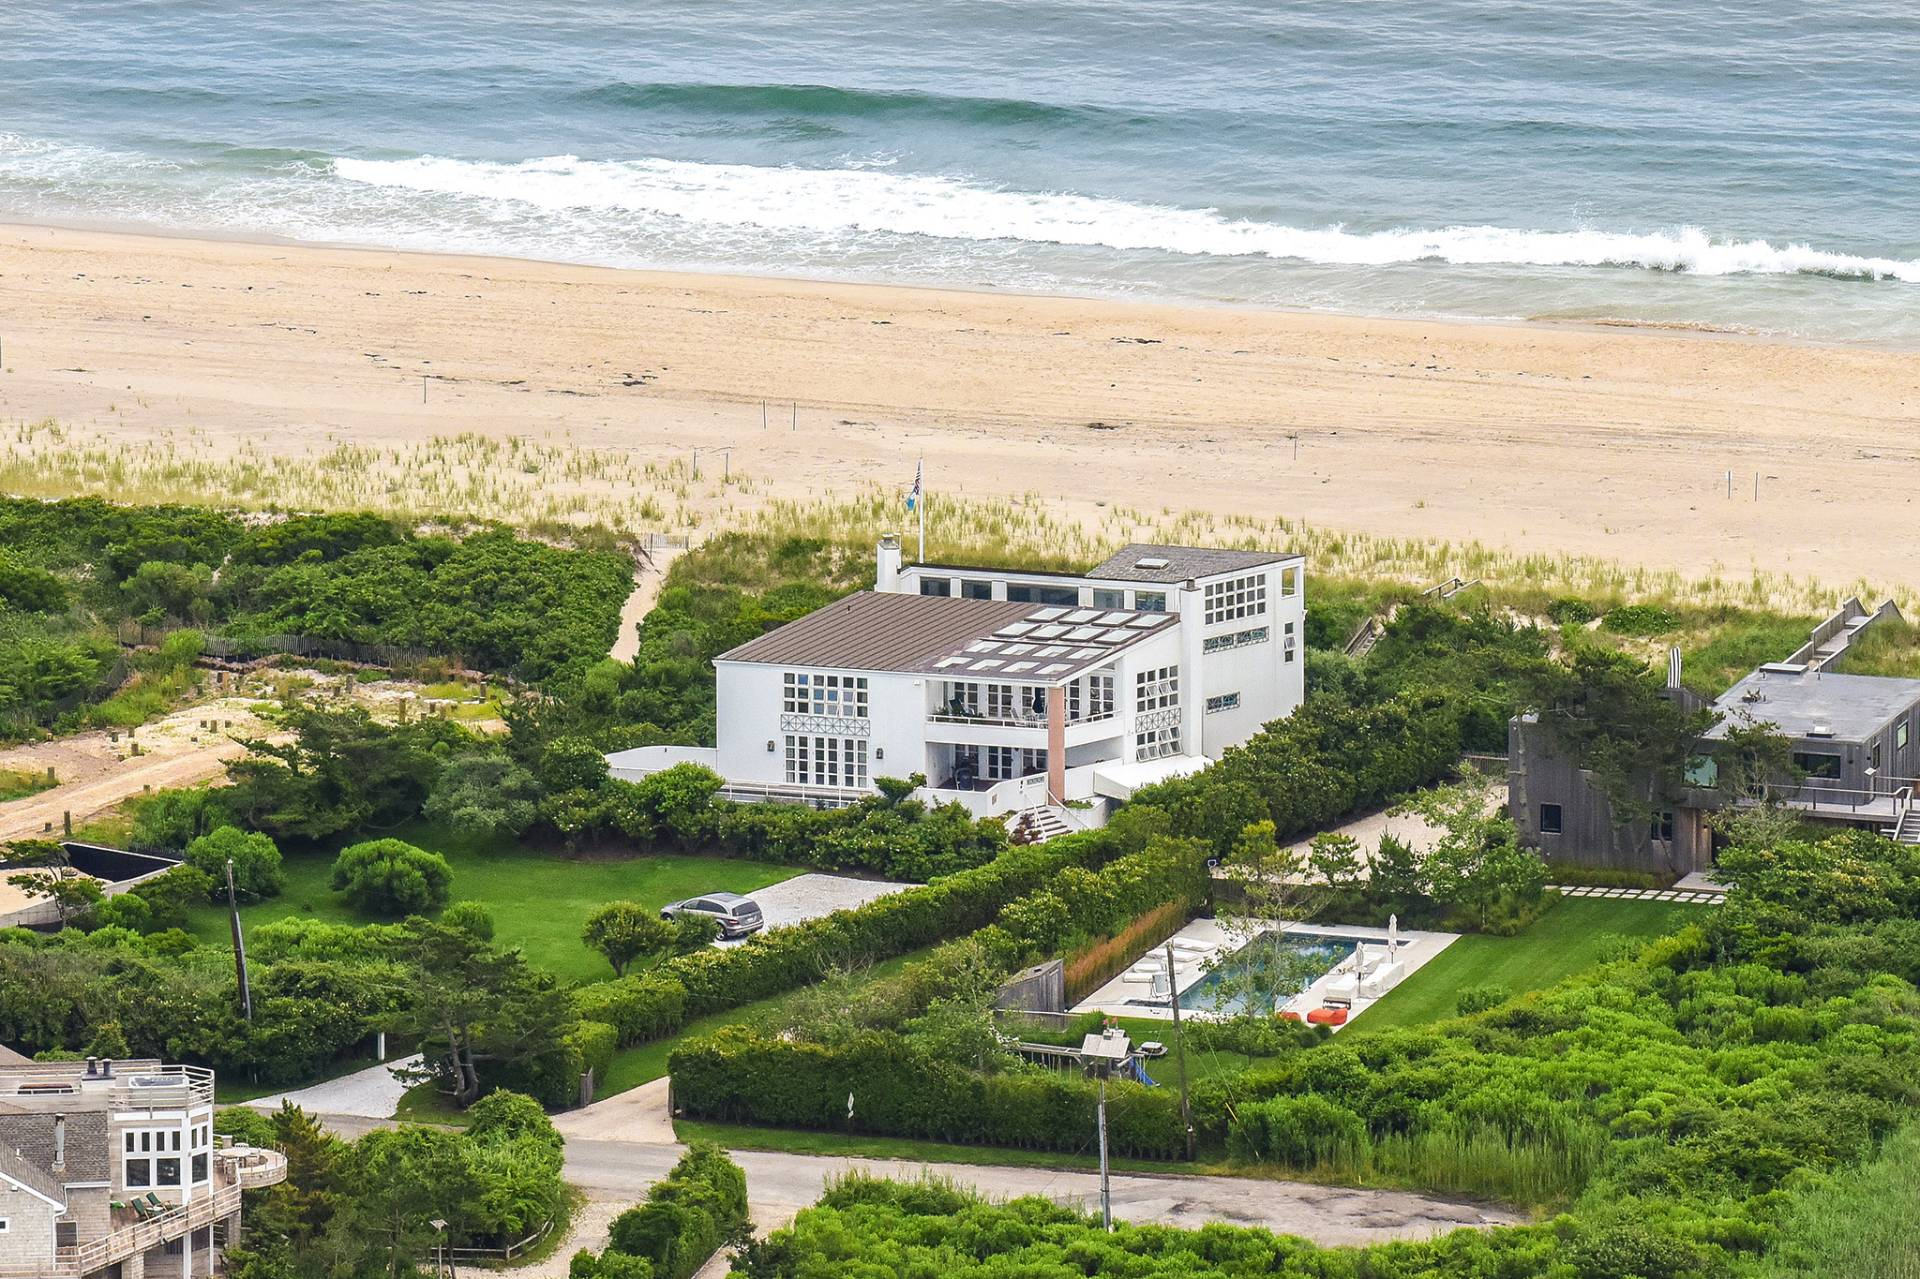 Single Family Home for Sale at The Sagaponack Beach House 134 Sandune Court, Sagaponack, New York